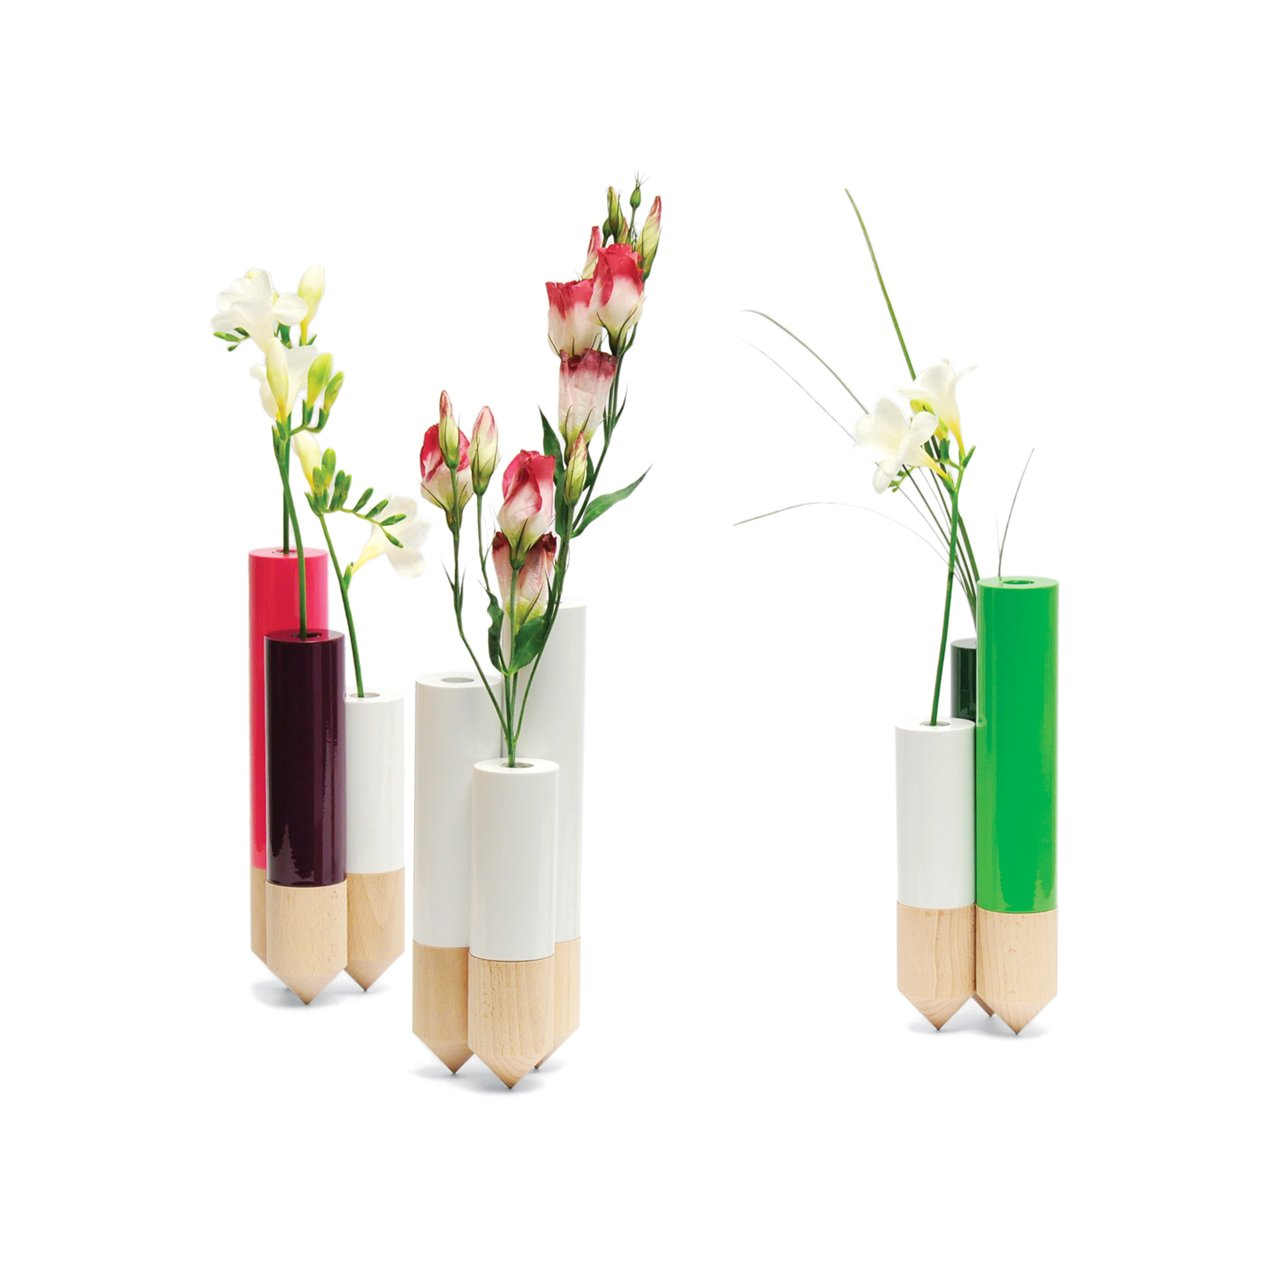 """Designed by FX Balléry and available through A+R, the Pik's three connected vases perform an understated balancing act, while cheery accent colors and pale wood nod to Nordic design.  Search """"lyngby vase"""" from Modern Vases in Metal, Glass, and Wood"""